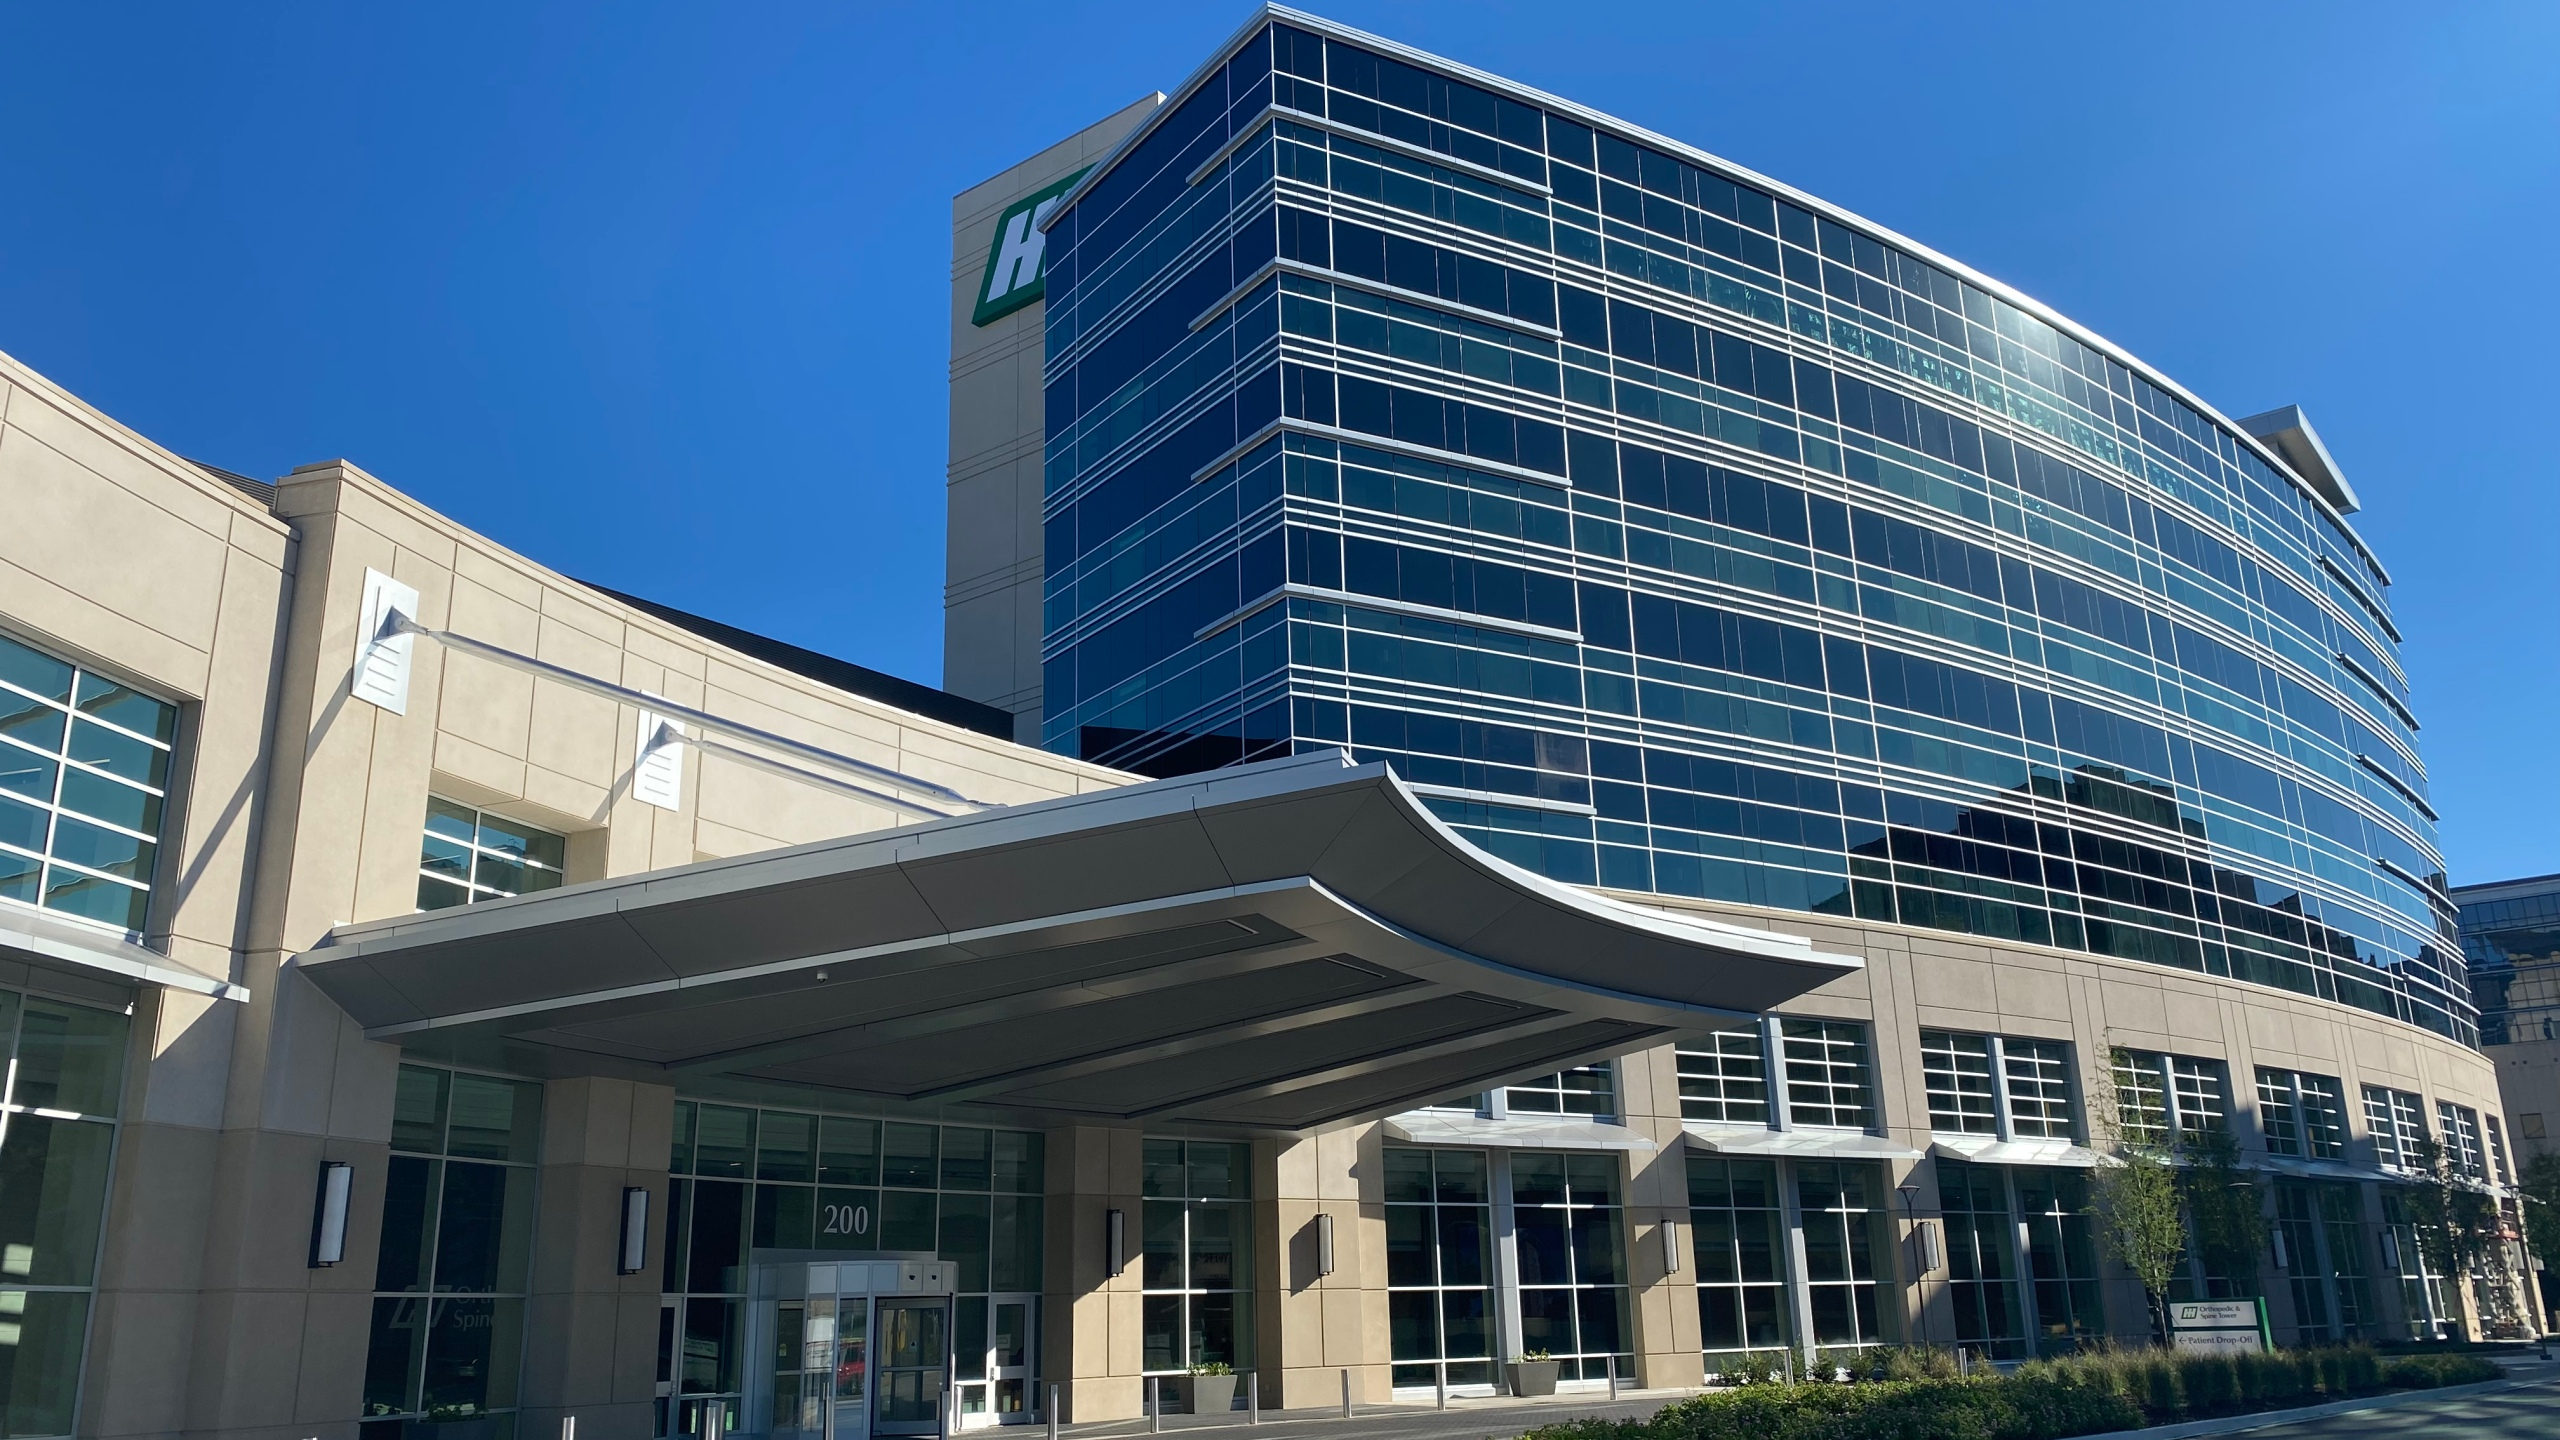 The Huntsville Hospital Spine and Orthopedic Tower quietly opened in September 2021.